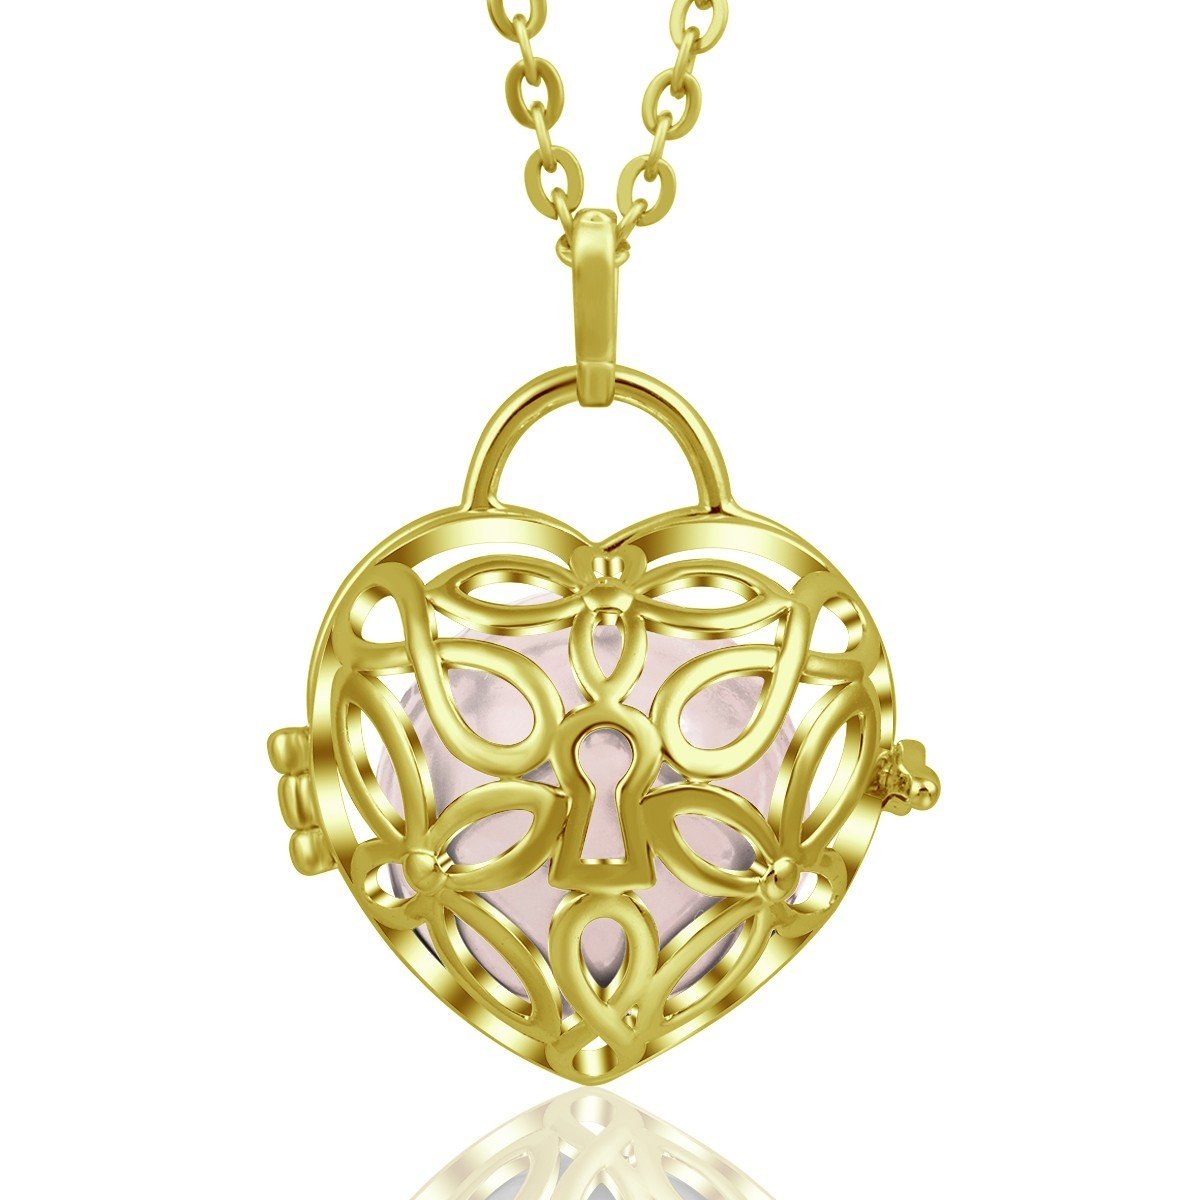 EUDORA Harmony Ball Necklace Heart Lock 18mm Pendant Silver Plated Angel Chime Bell Lucky Gift, 30''